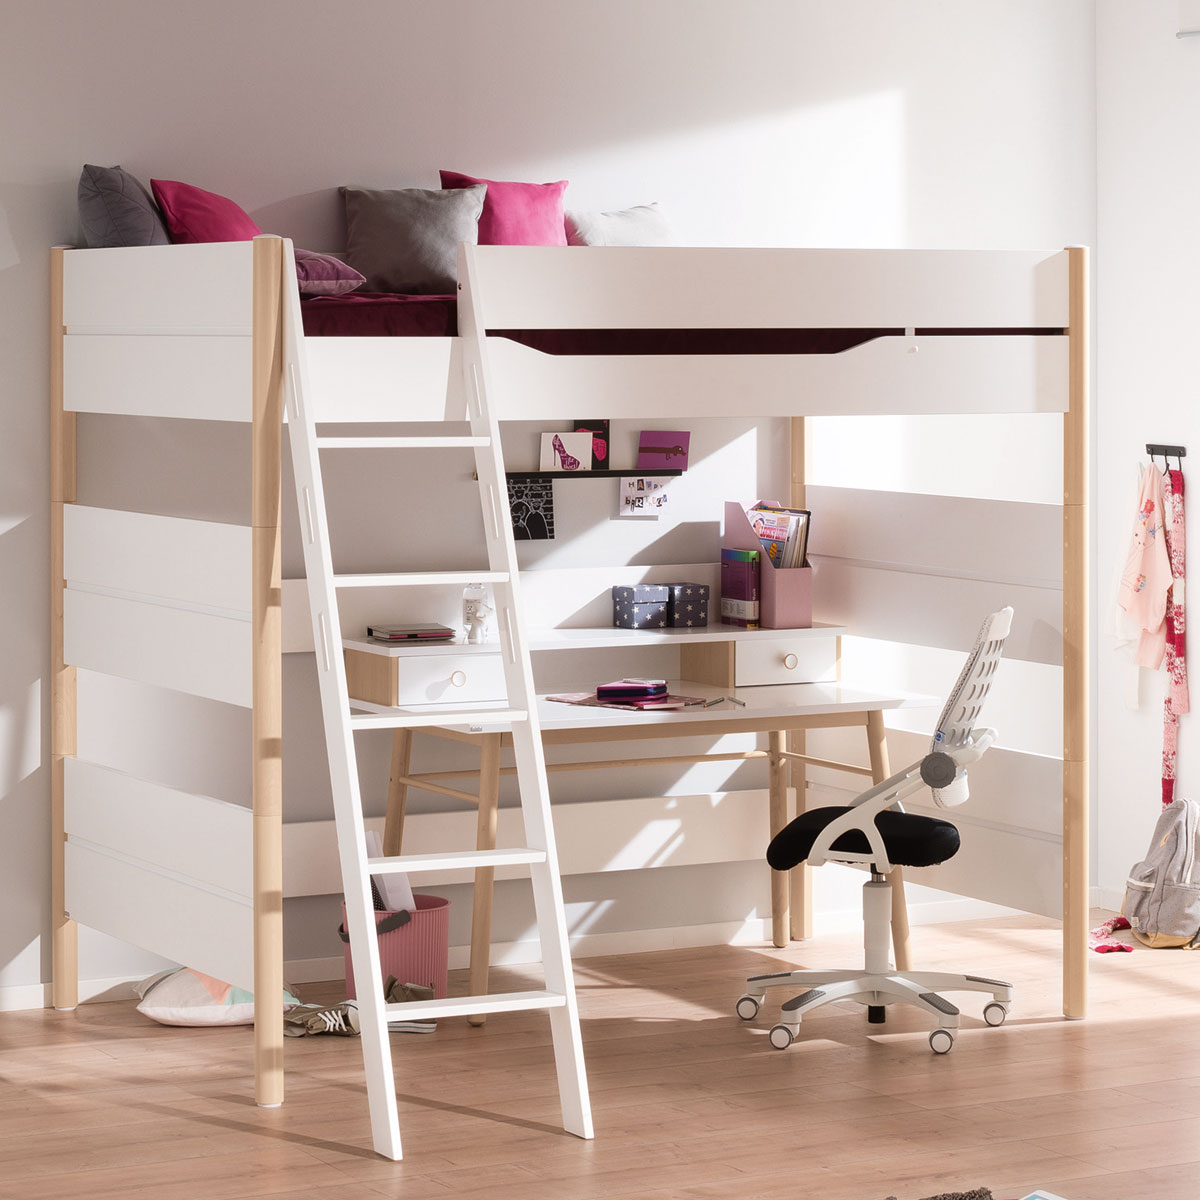 paidi ylvie hochbett in gro er auswahl bei babyonlineshop. Black Bedroom Furniture Sets. Home Design Ideas